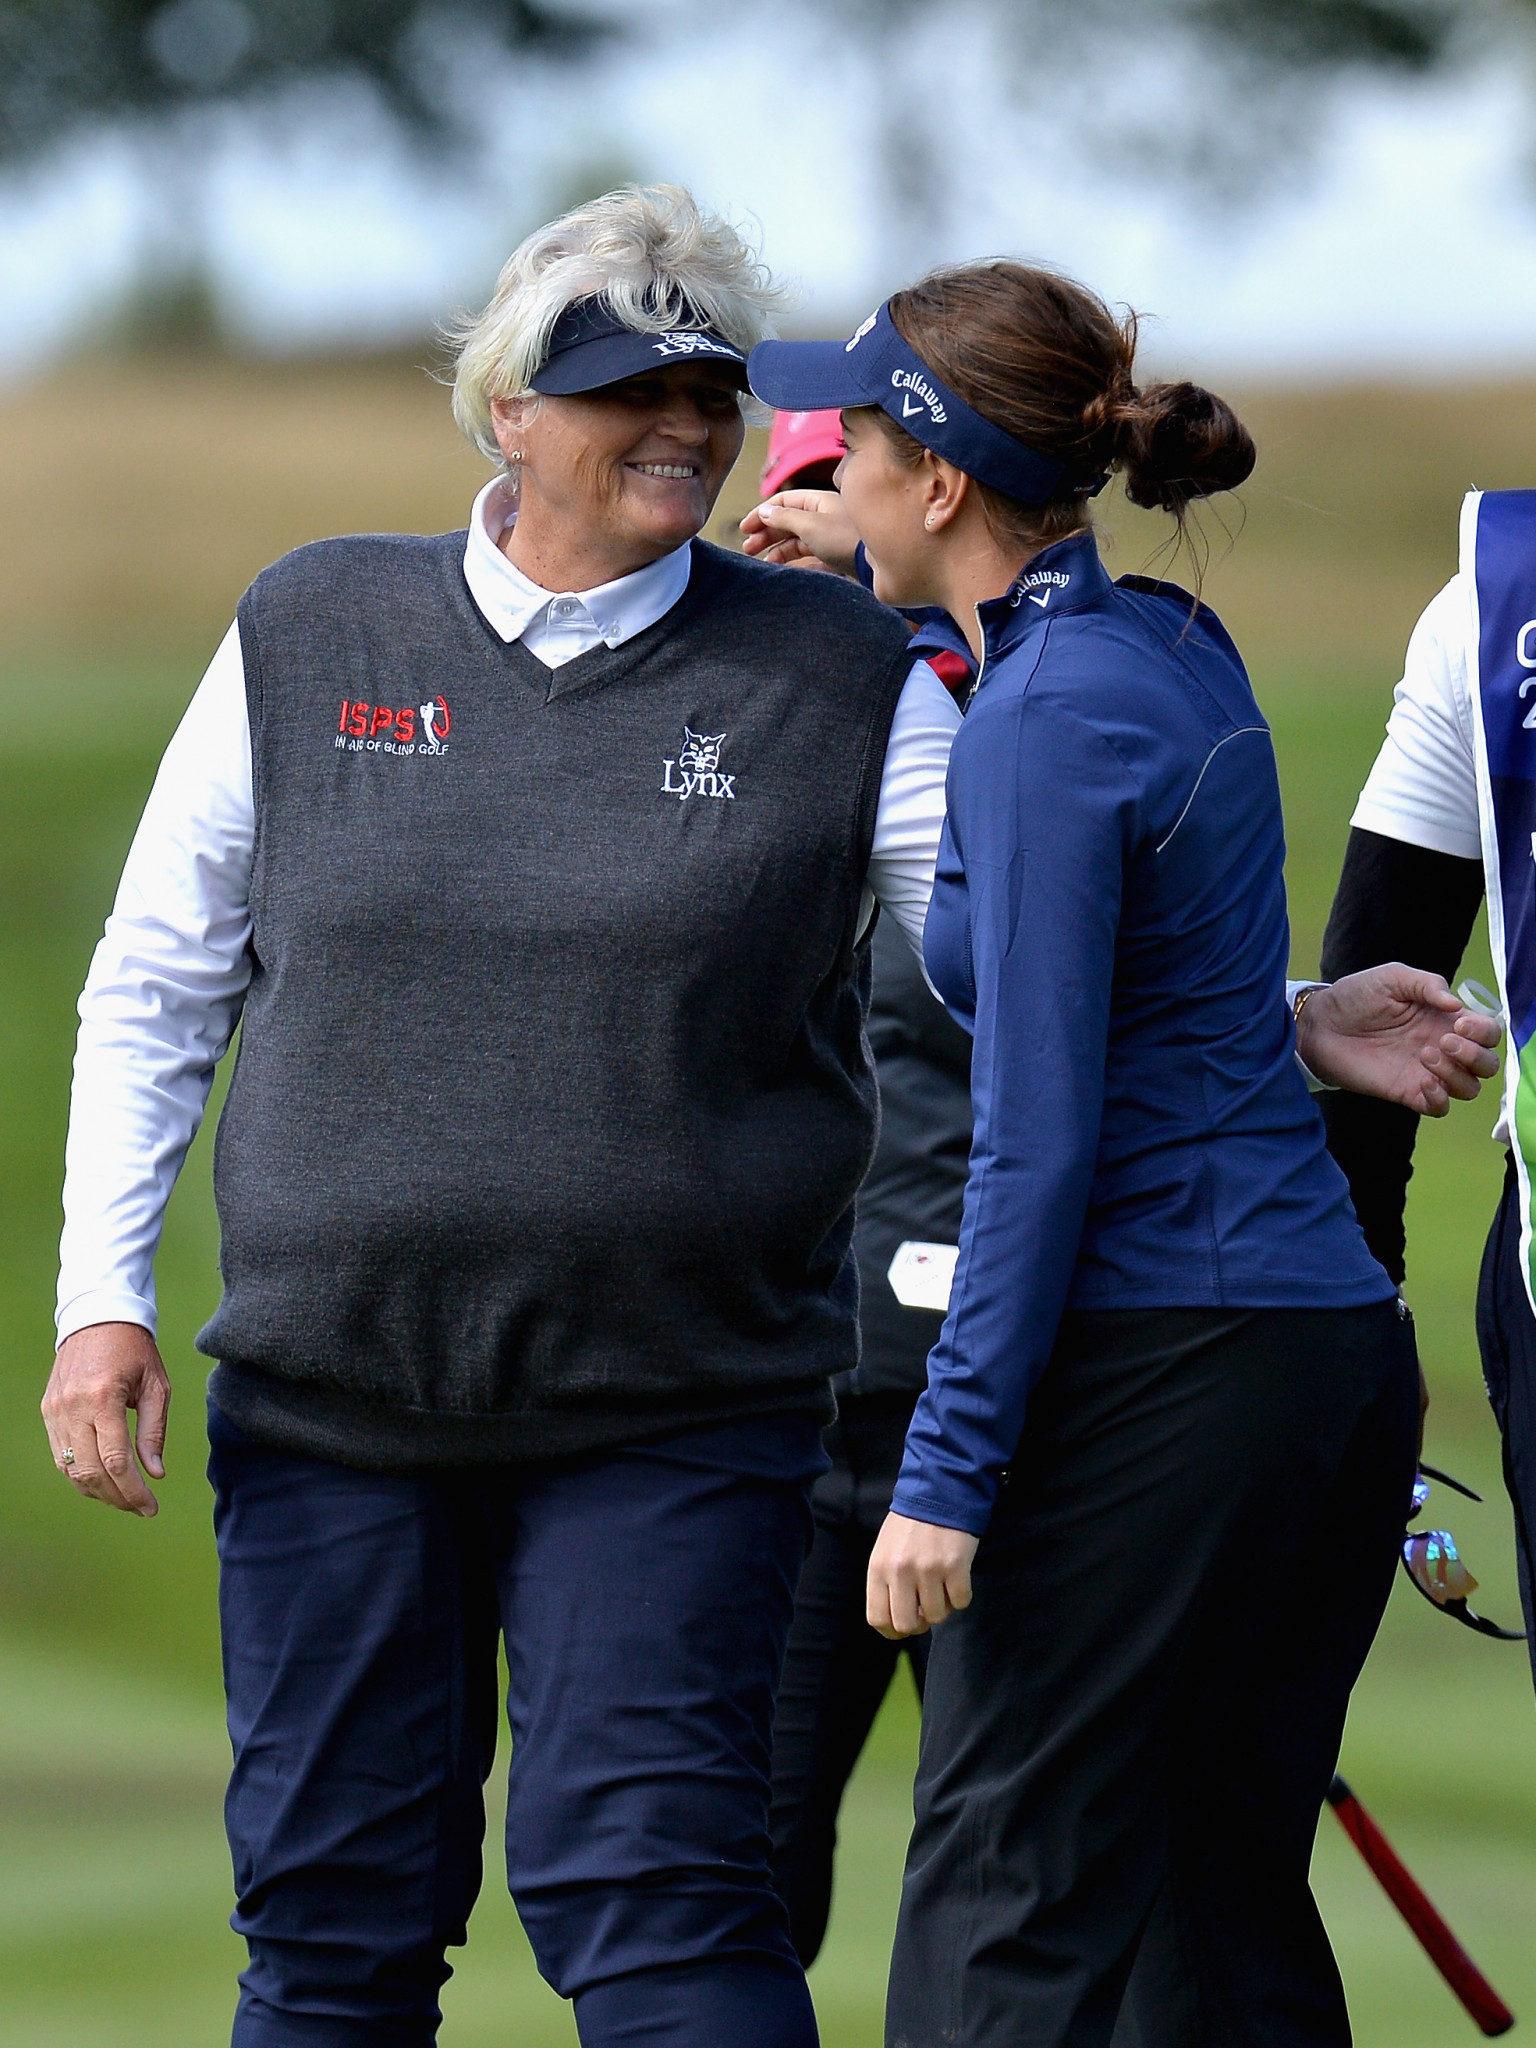 Britain aiming for three of four semi-final spots in women's European Golf Championships